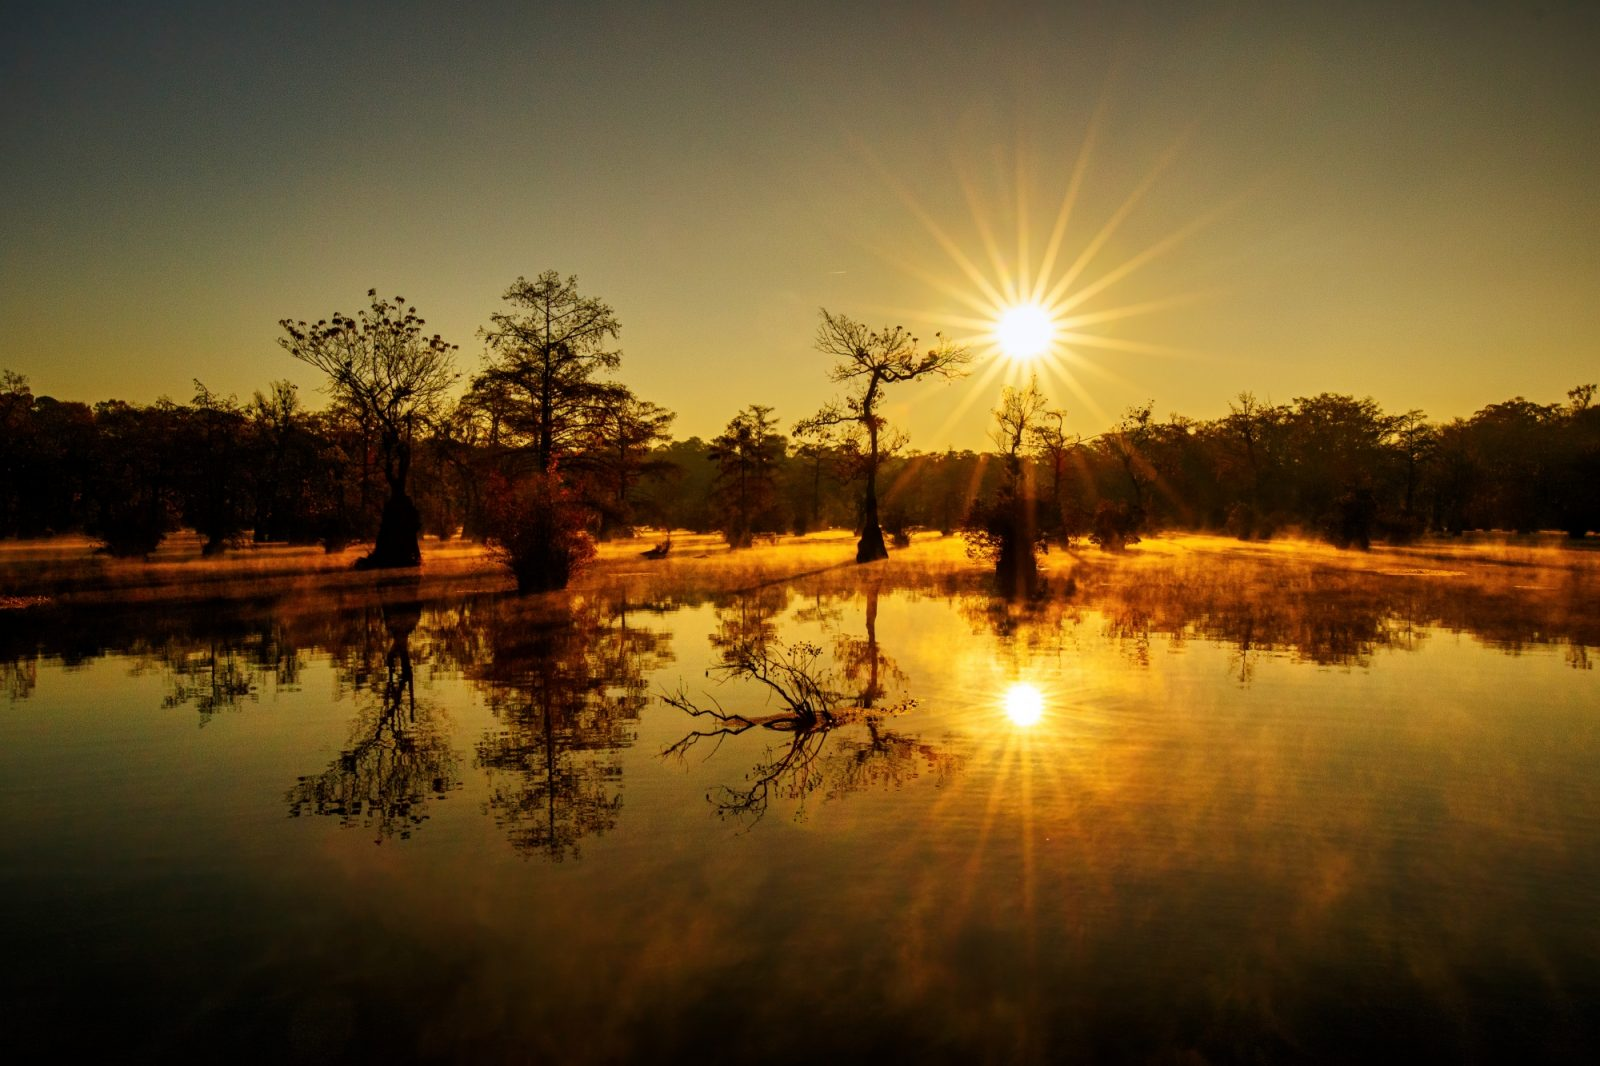 The sunrise of a pond that rises in the mist